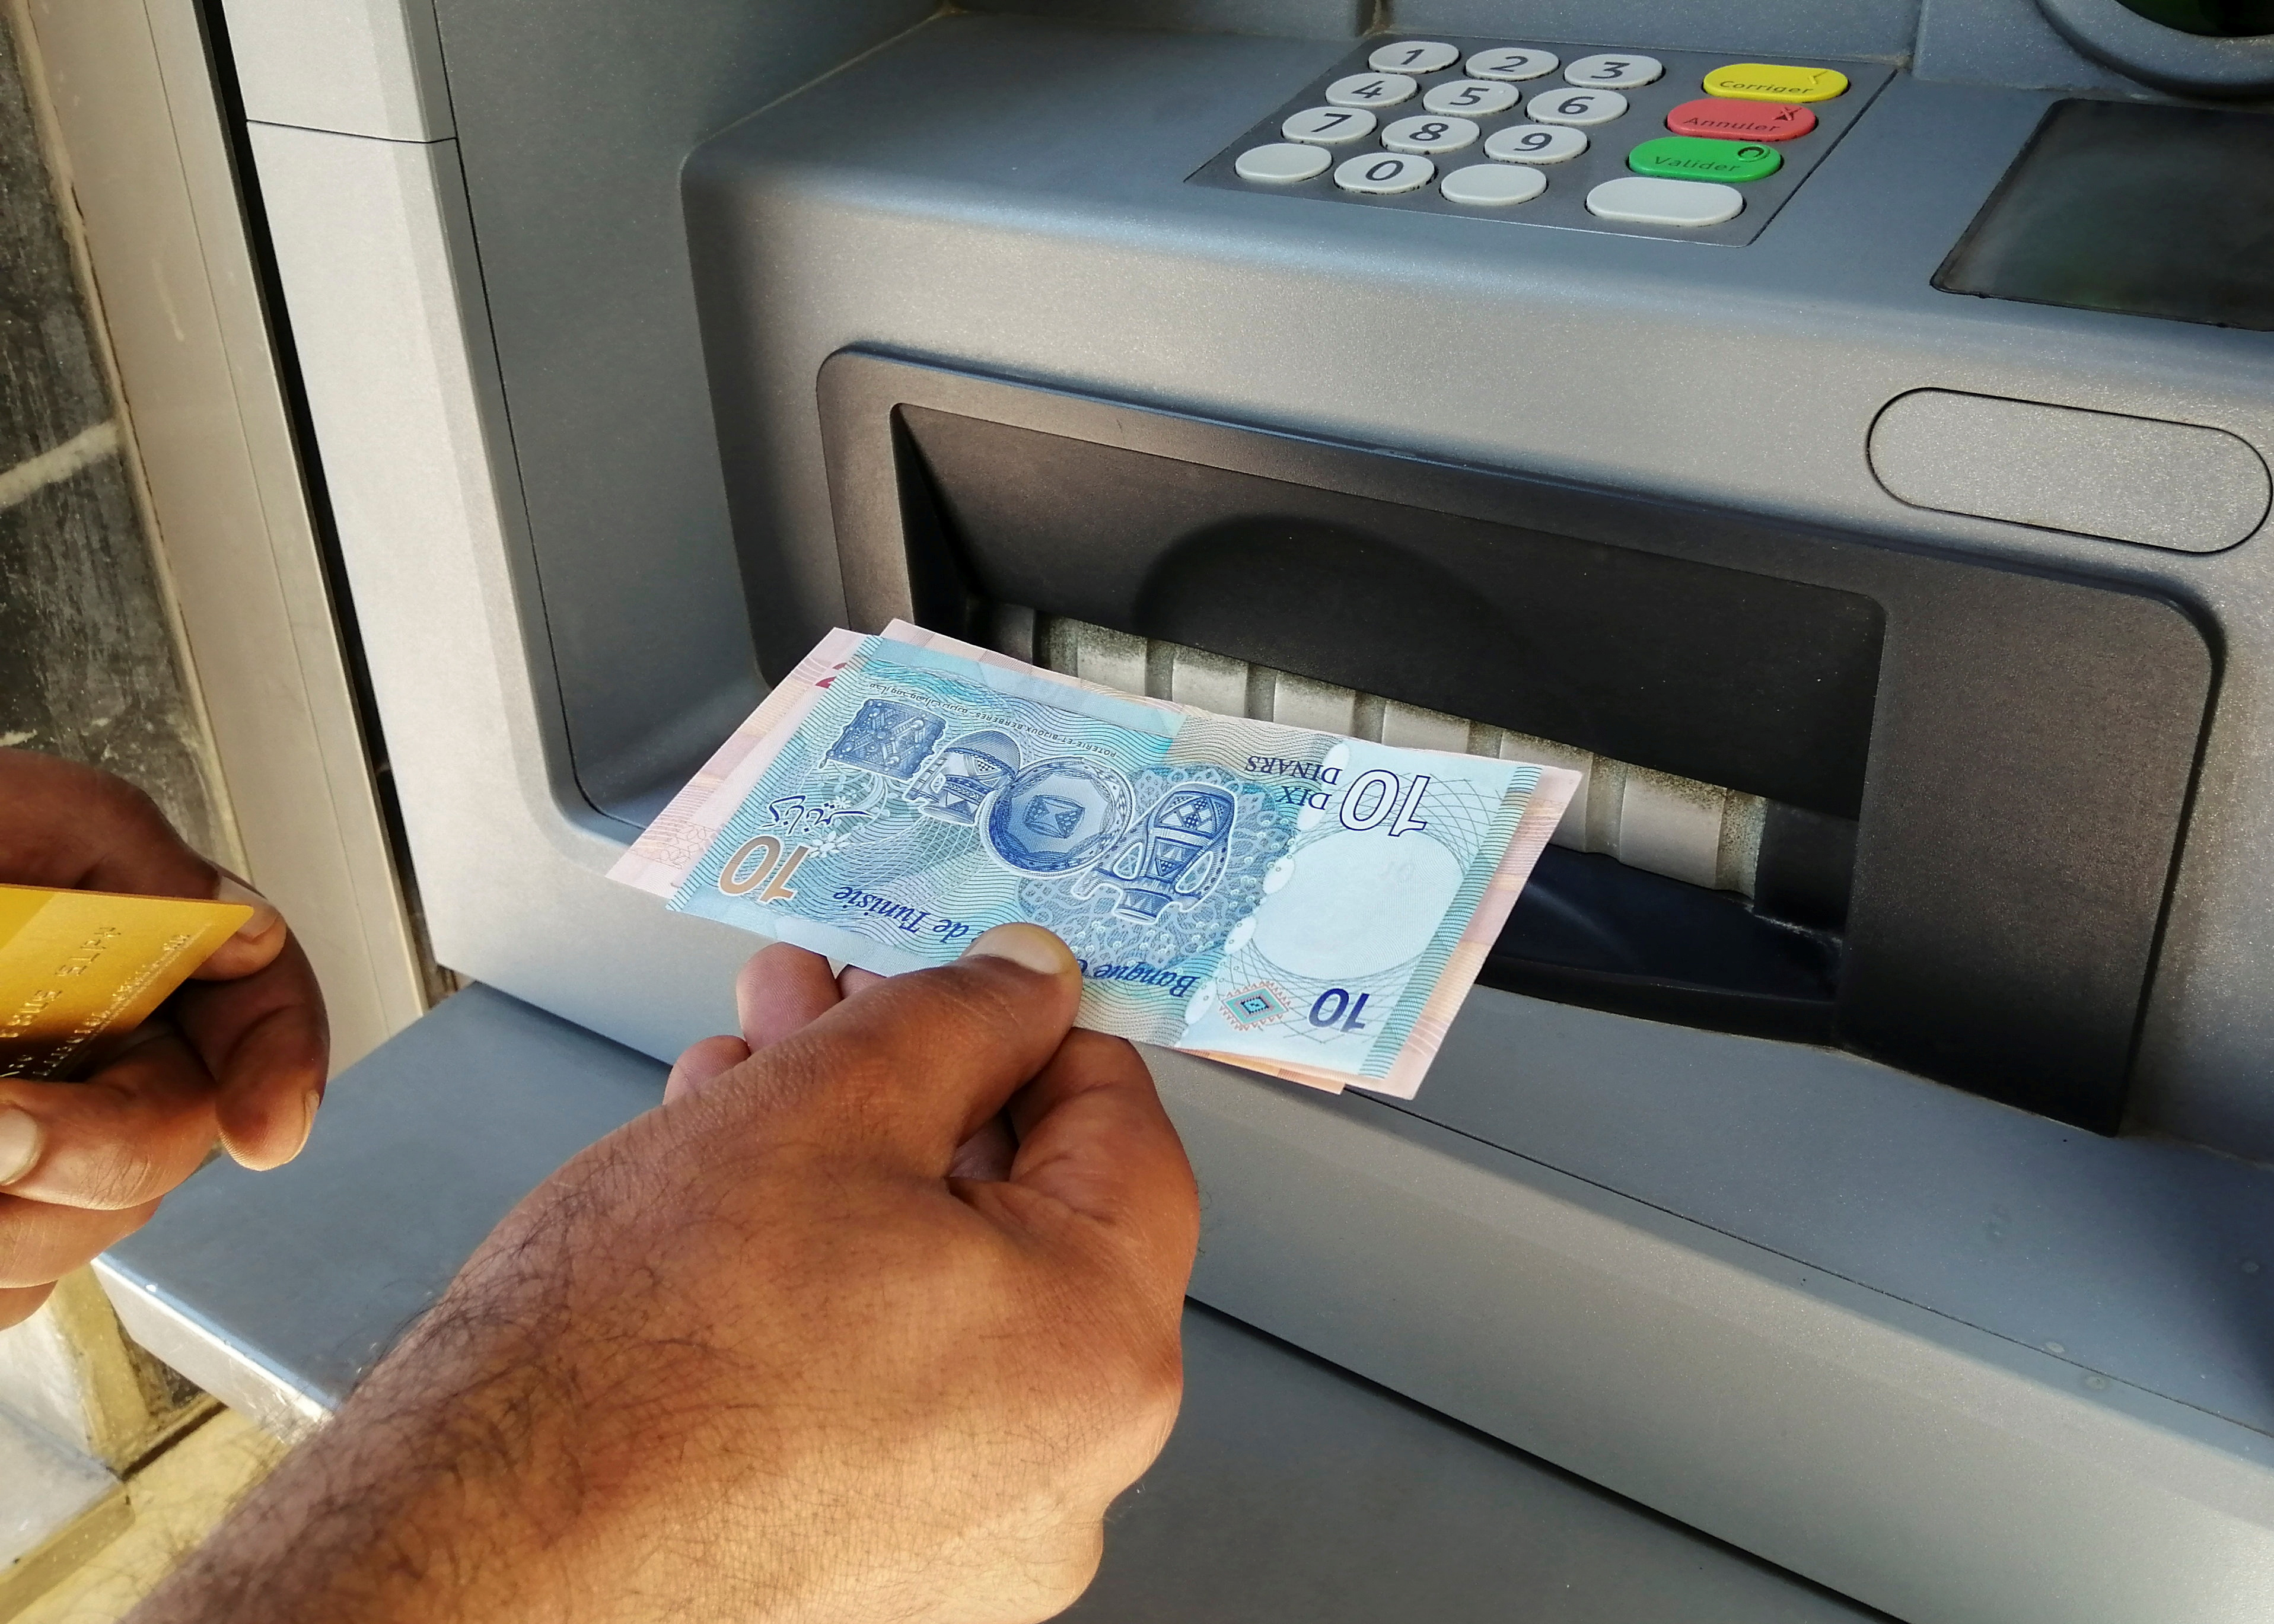 A man displays Tunisian dinar banknotes after withdrawing cash from an ATM machine in Tunis, Tunisia, May 25, 2021. Picture taken May 25, 2021. REUTERS/Jihed Abidellaoui/File Photo